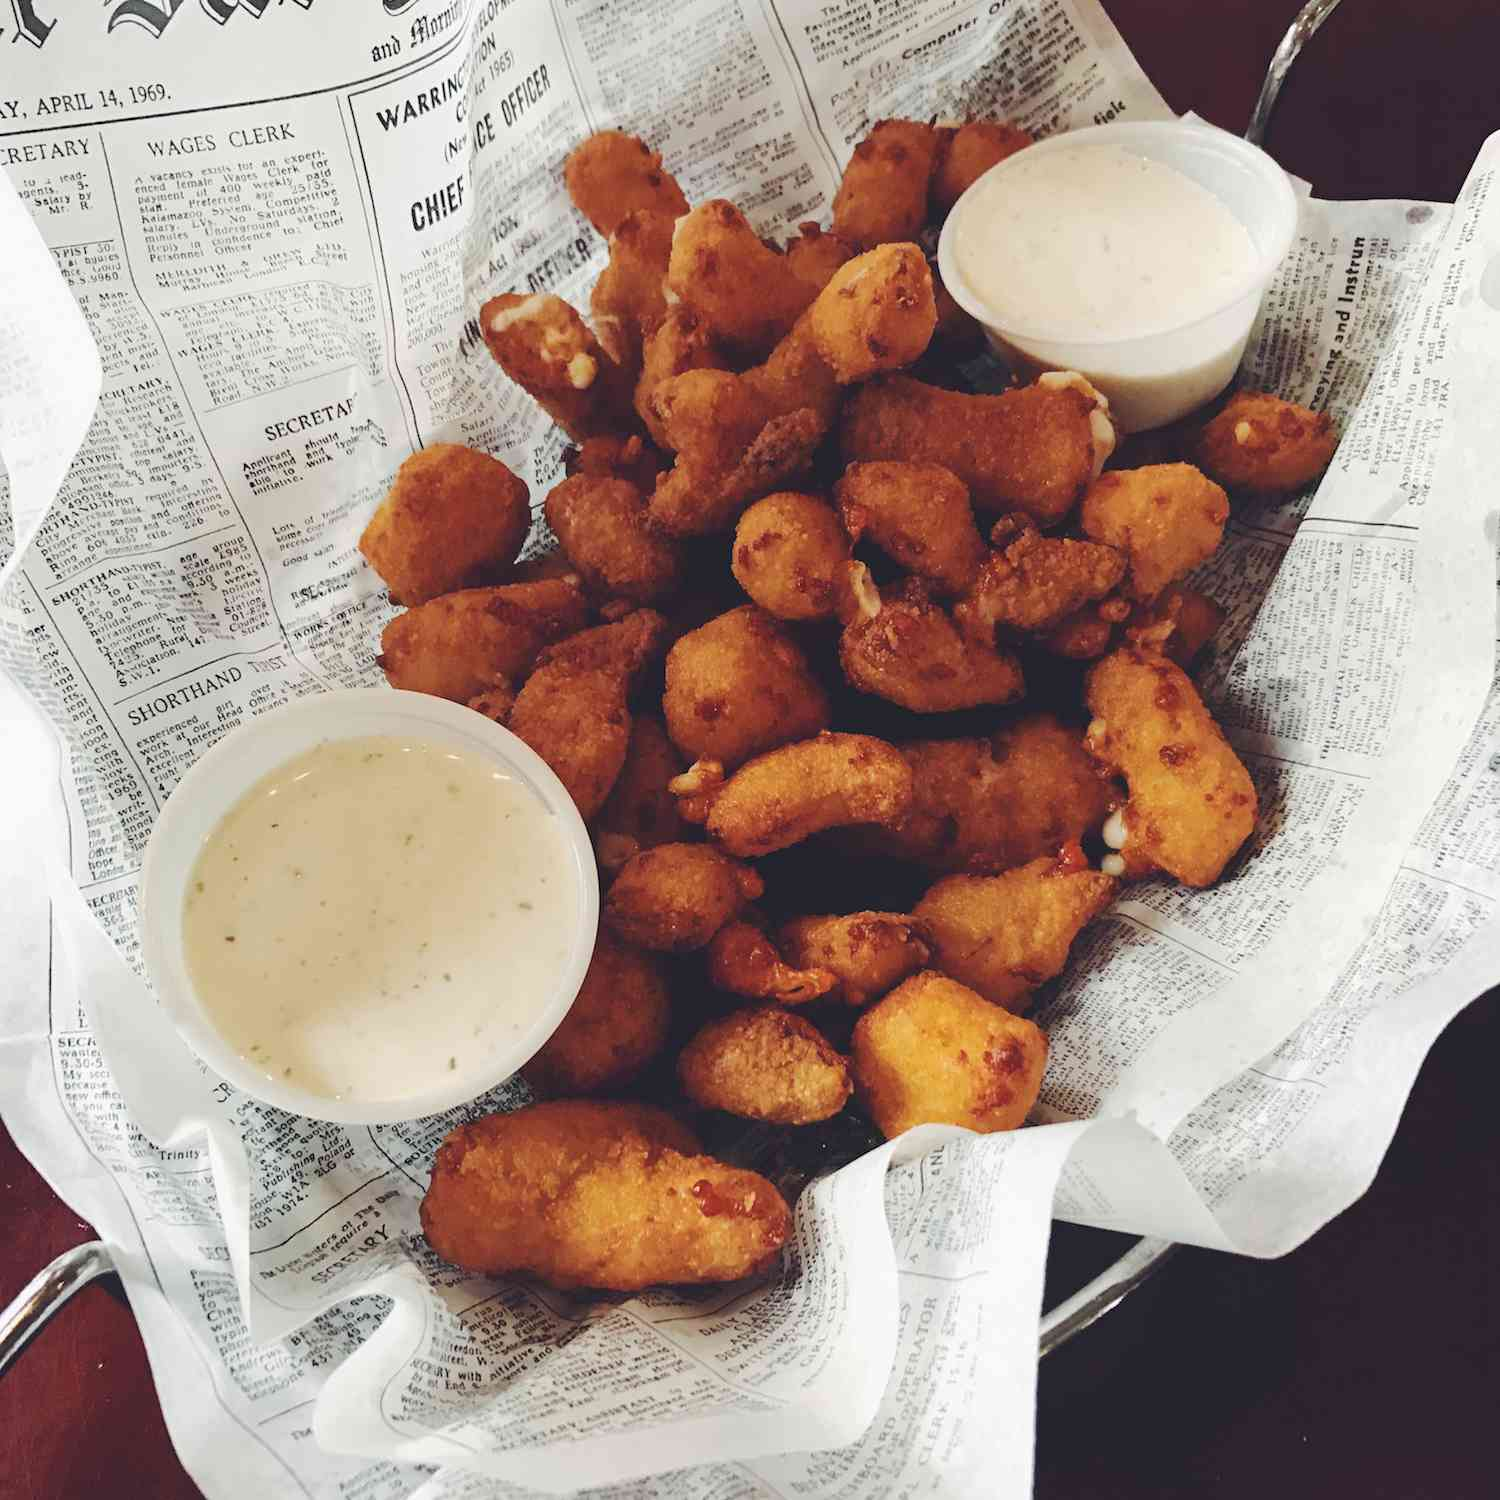 Cheese Curds in Wisconsin